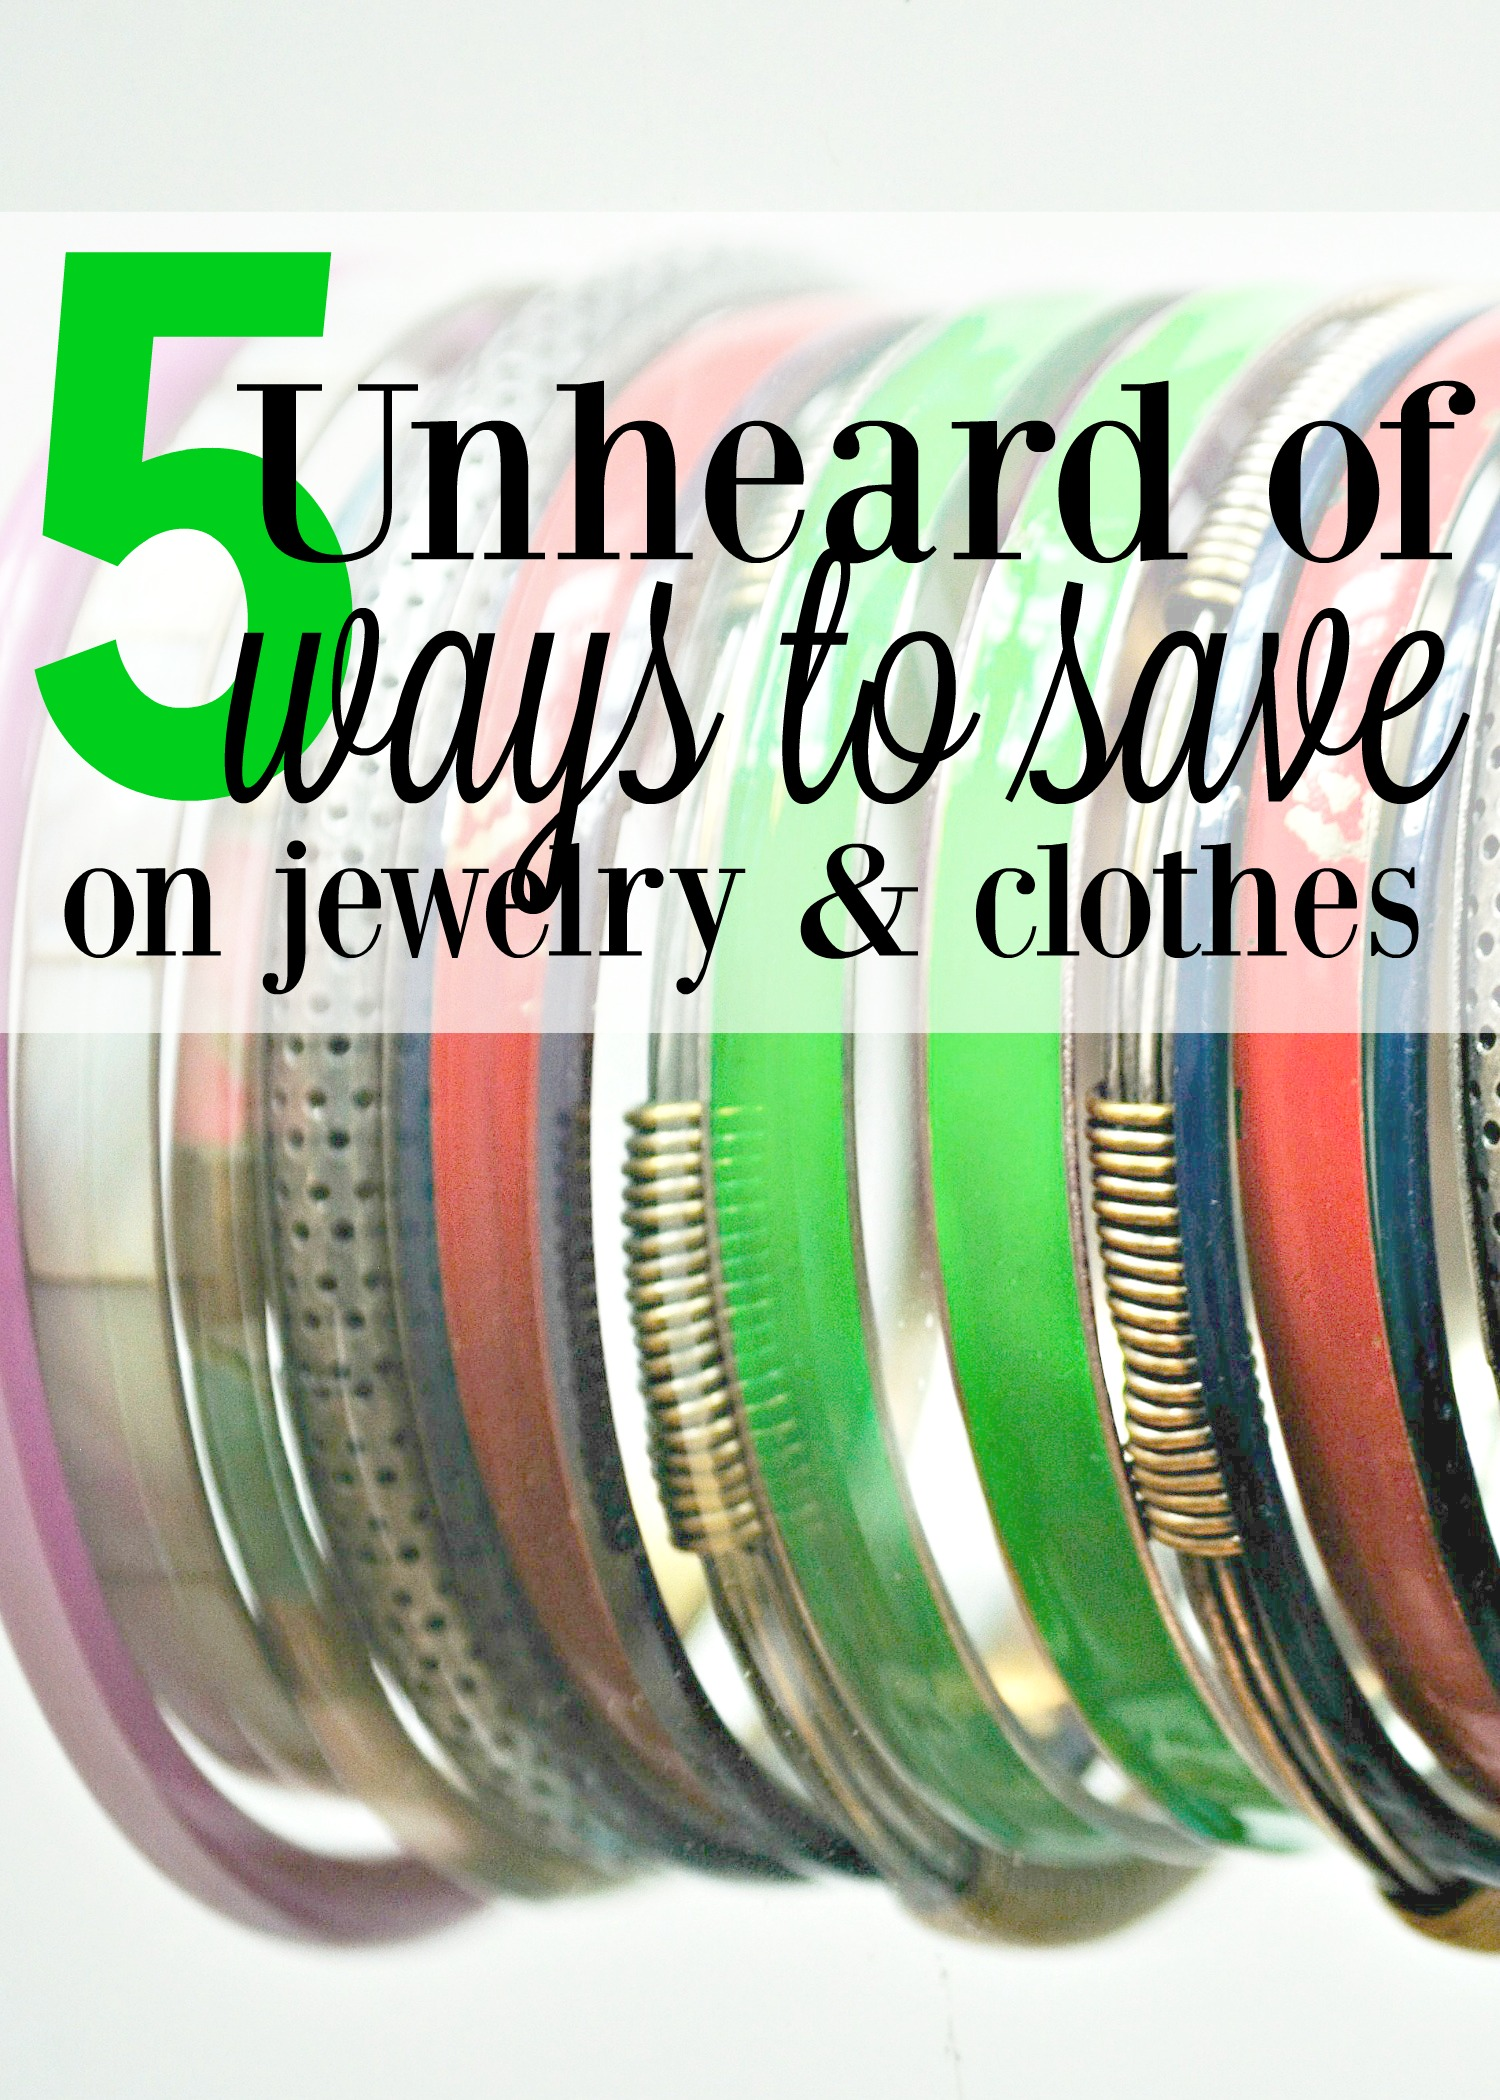 Save big with these 5 ways to go inexpensive on women's jewelry accessories, products and more. I love #2! https://couponcravings.com